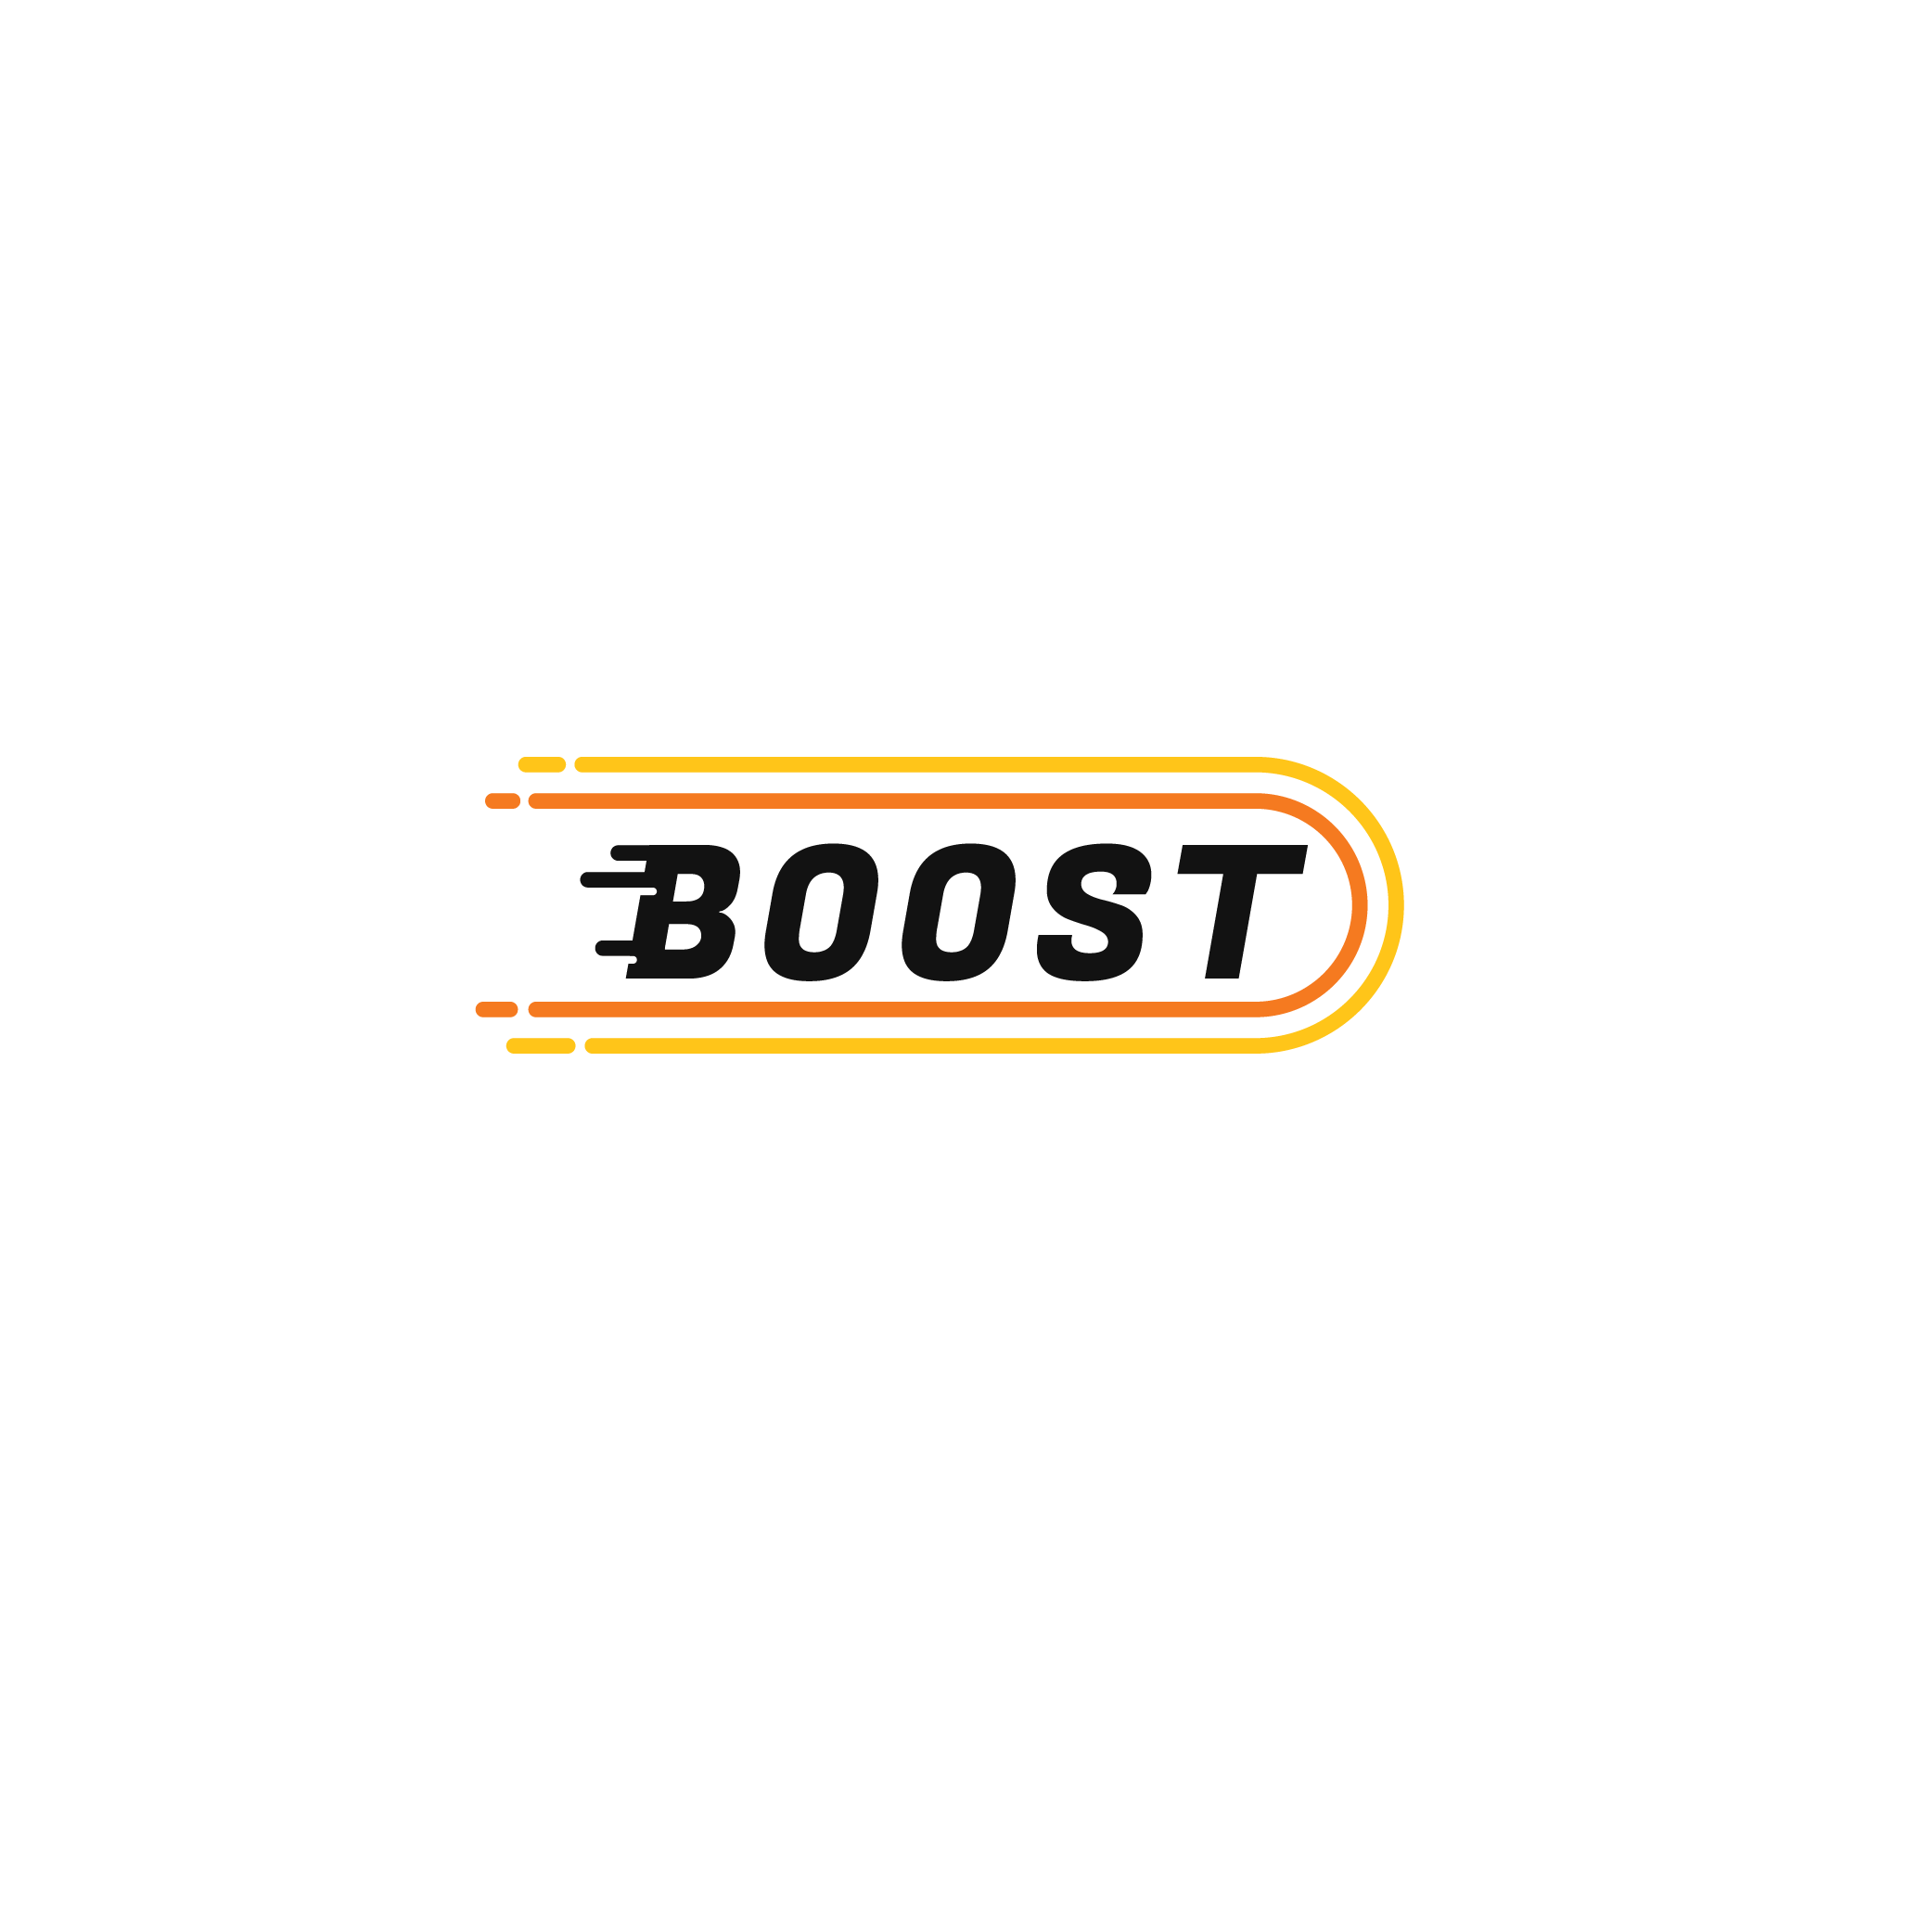 Boost-02.png